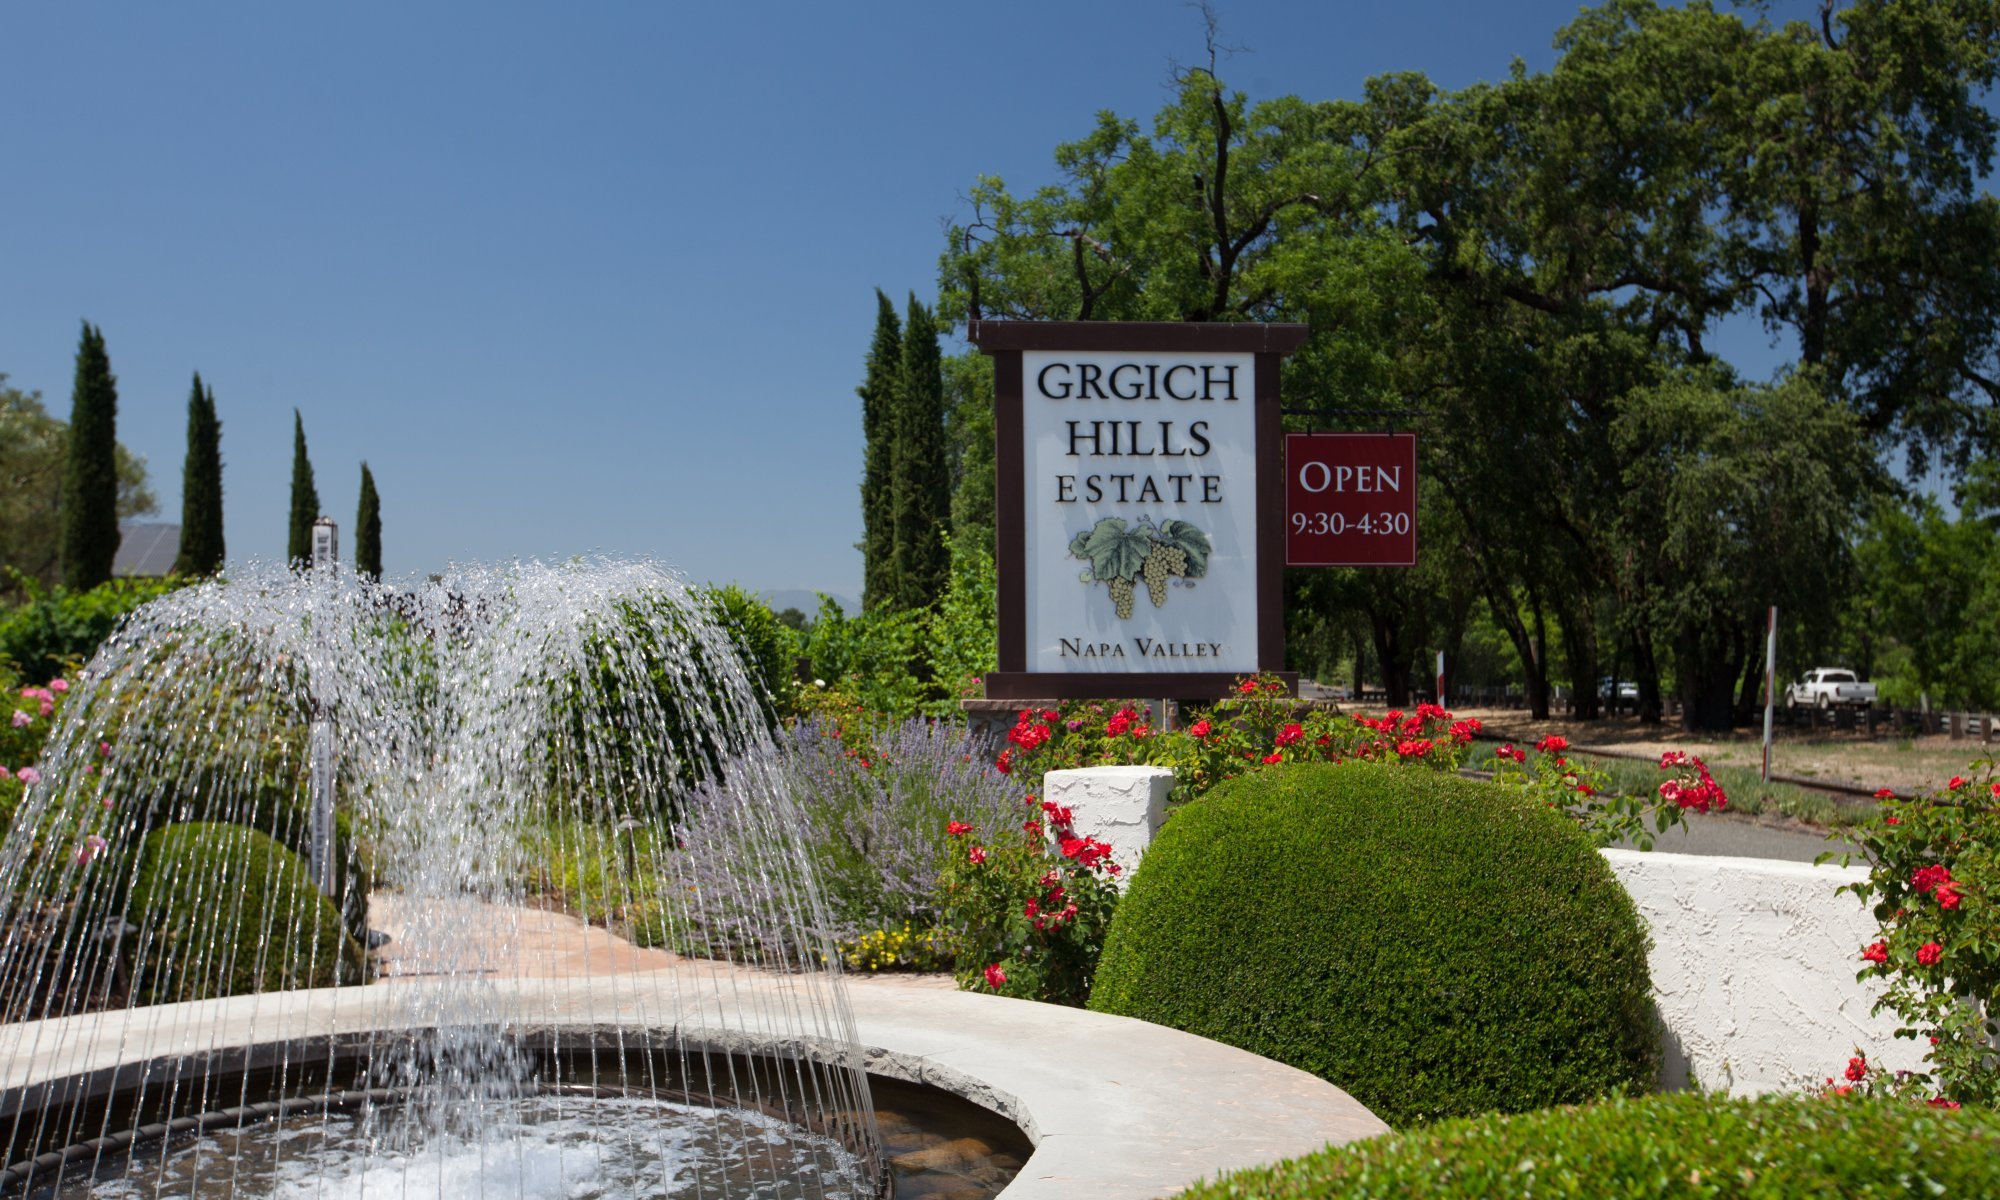 Fountain and entrance sign at Grgich Hills Estate Napa Valley